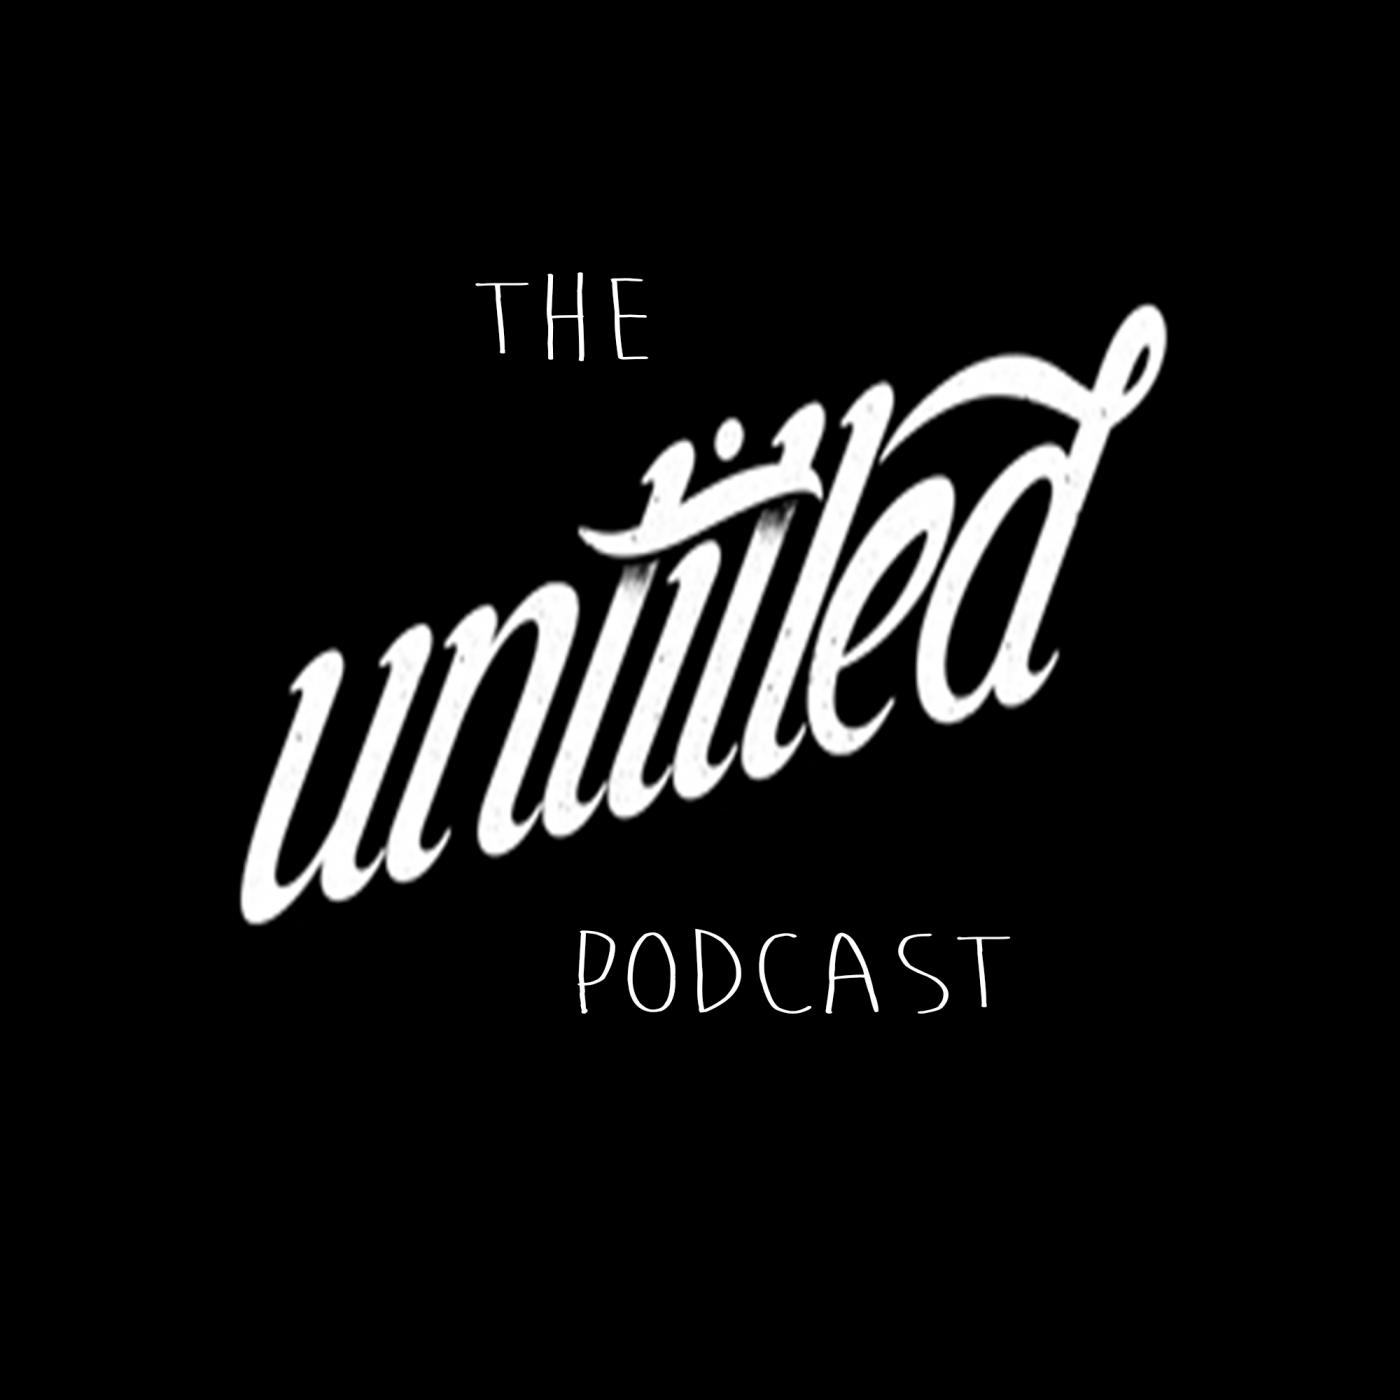 WWE - The Untitled Podcast